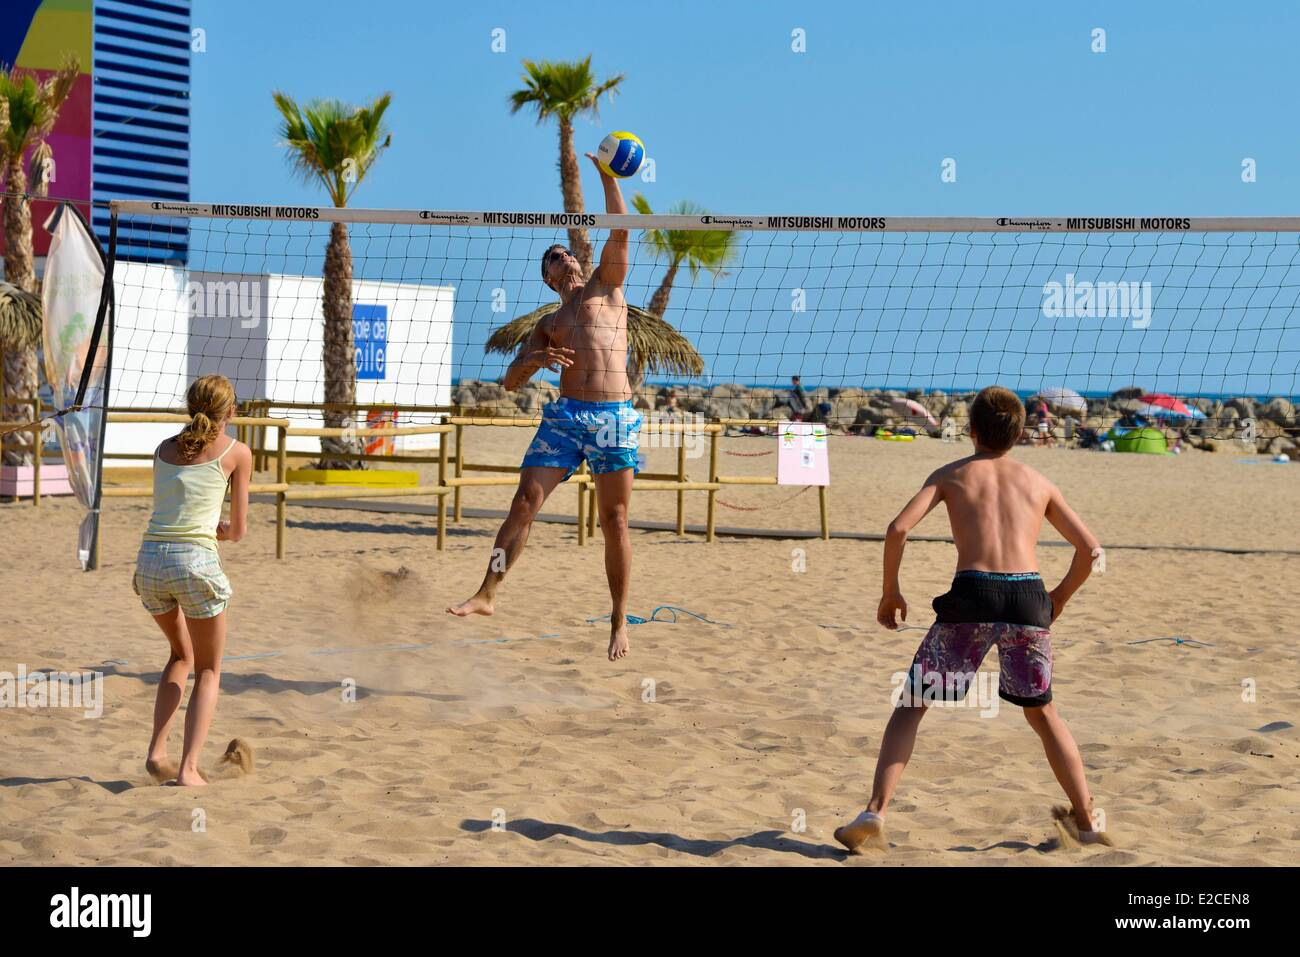 France, Herault, Valras Plage, match of volleyball on the beach - Stock Image